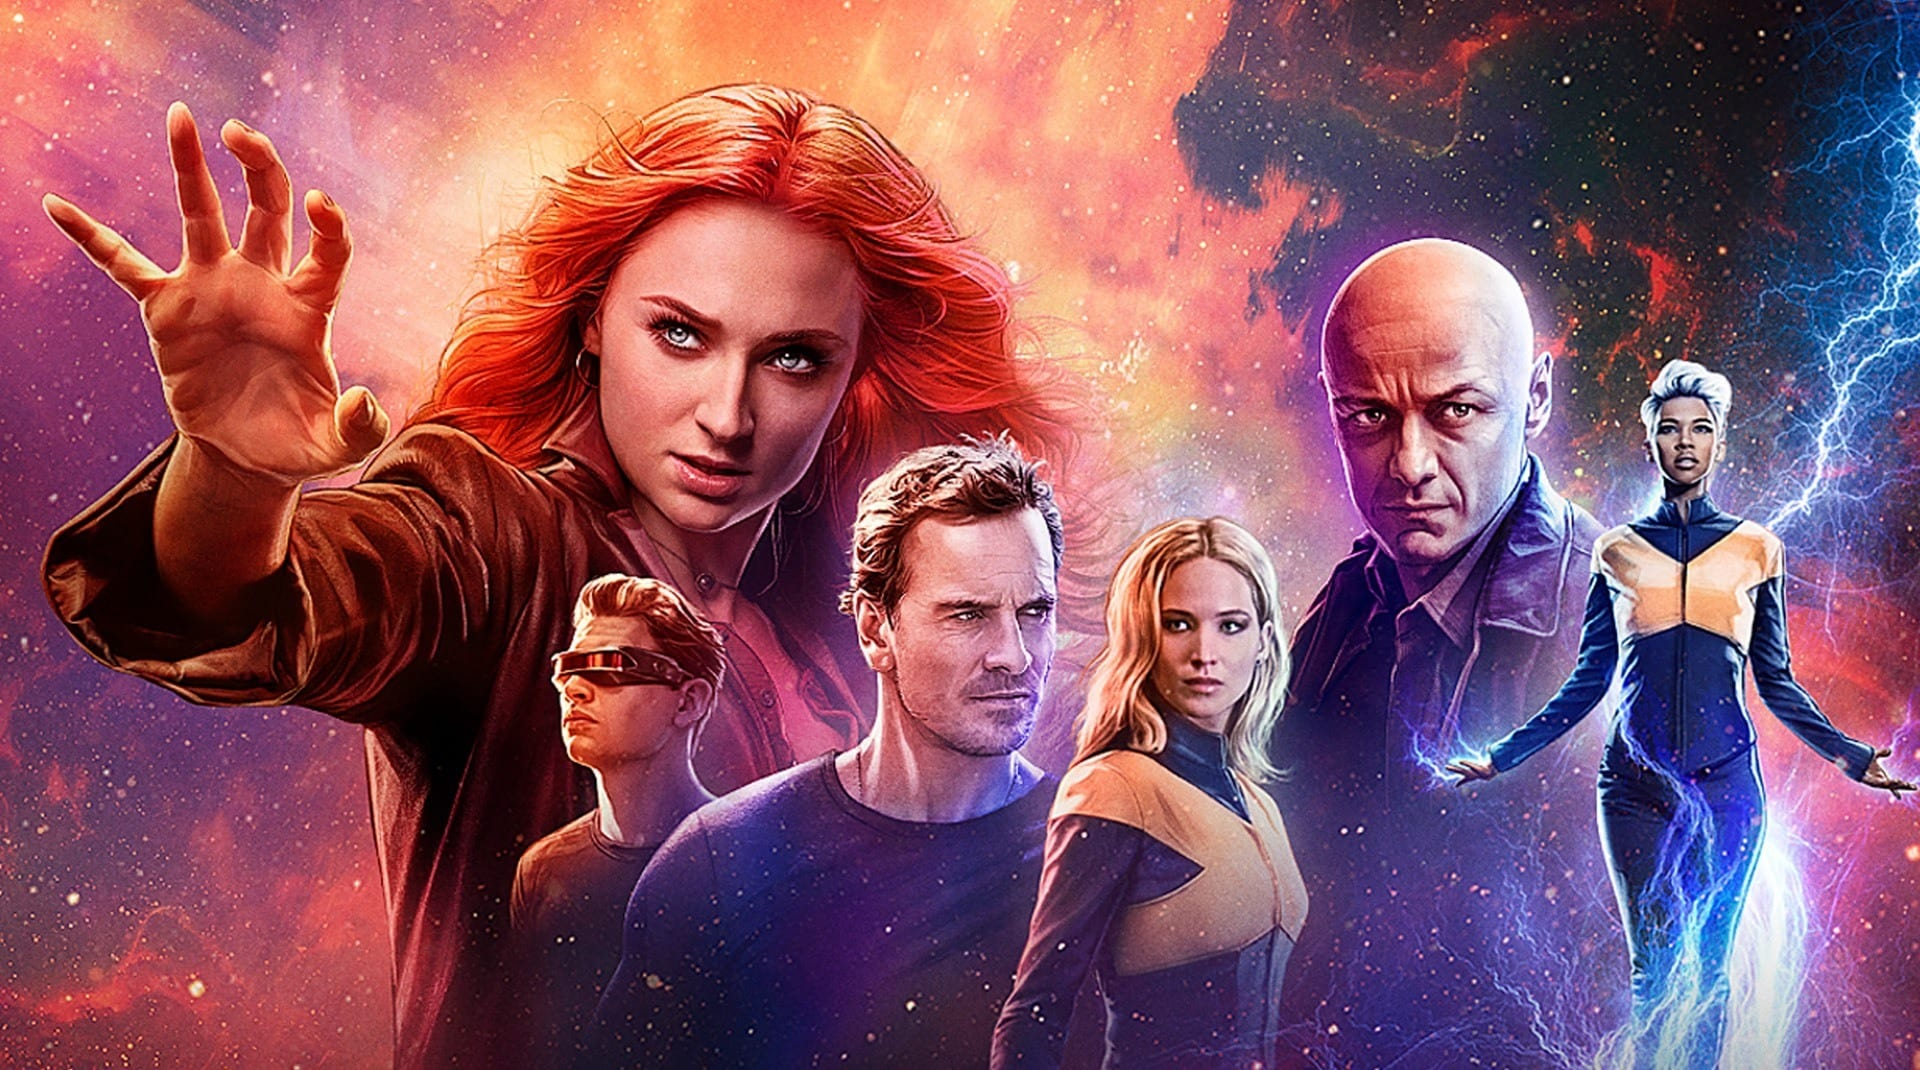 Un poster del film X-Men: Dark Phoenix